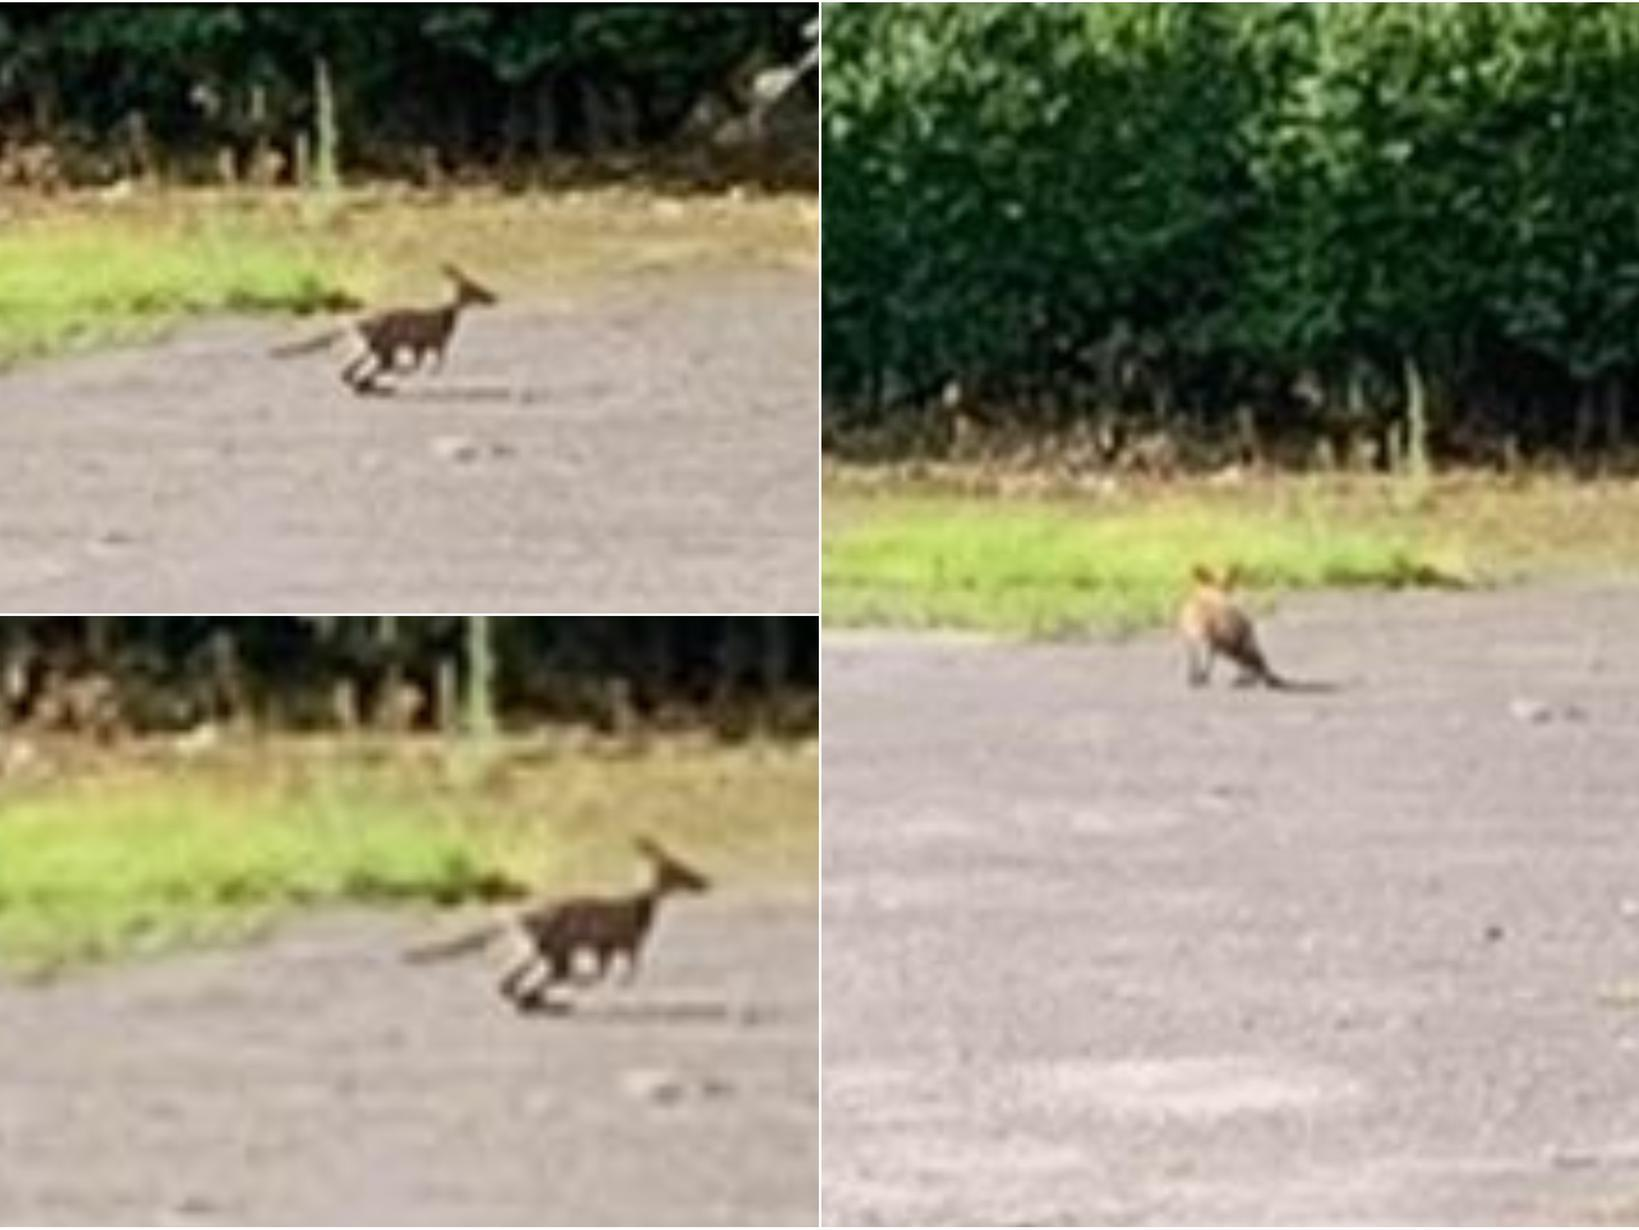 Mystery as 'kangaroo' spotted in Leeds pub car park by hair salon owner